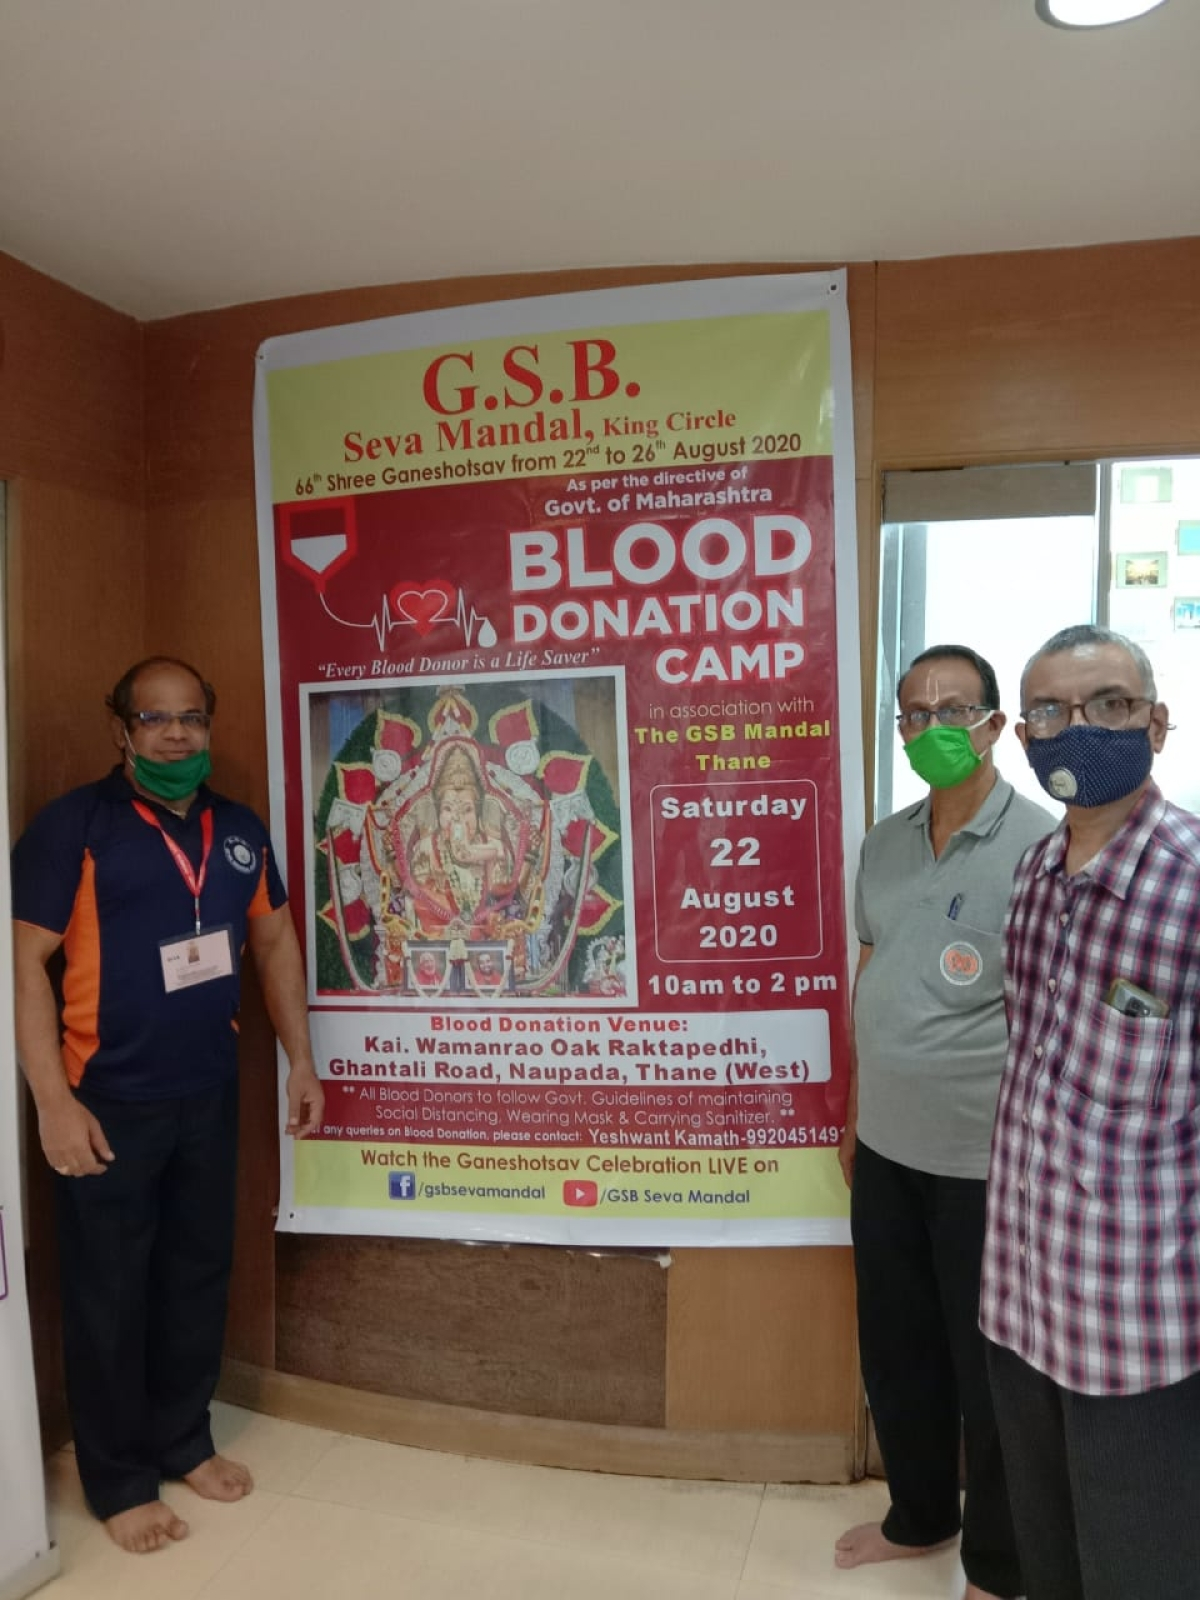 Picture from blood donation camp held at Thane on August 22